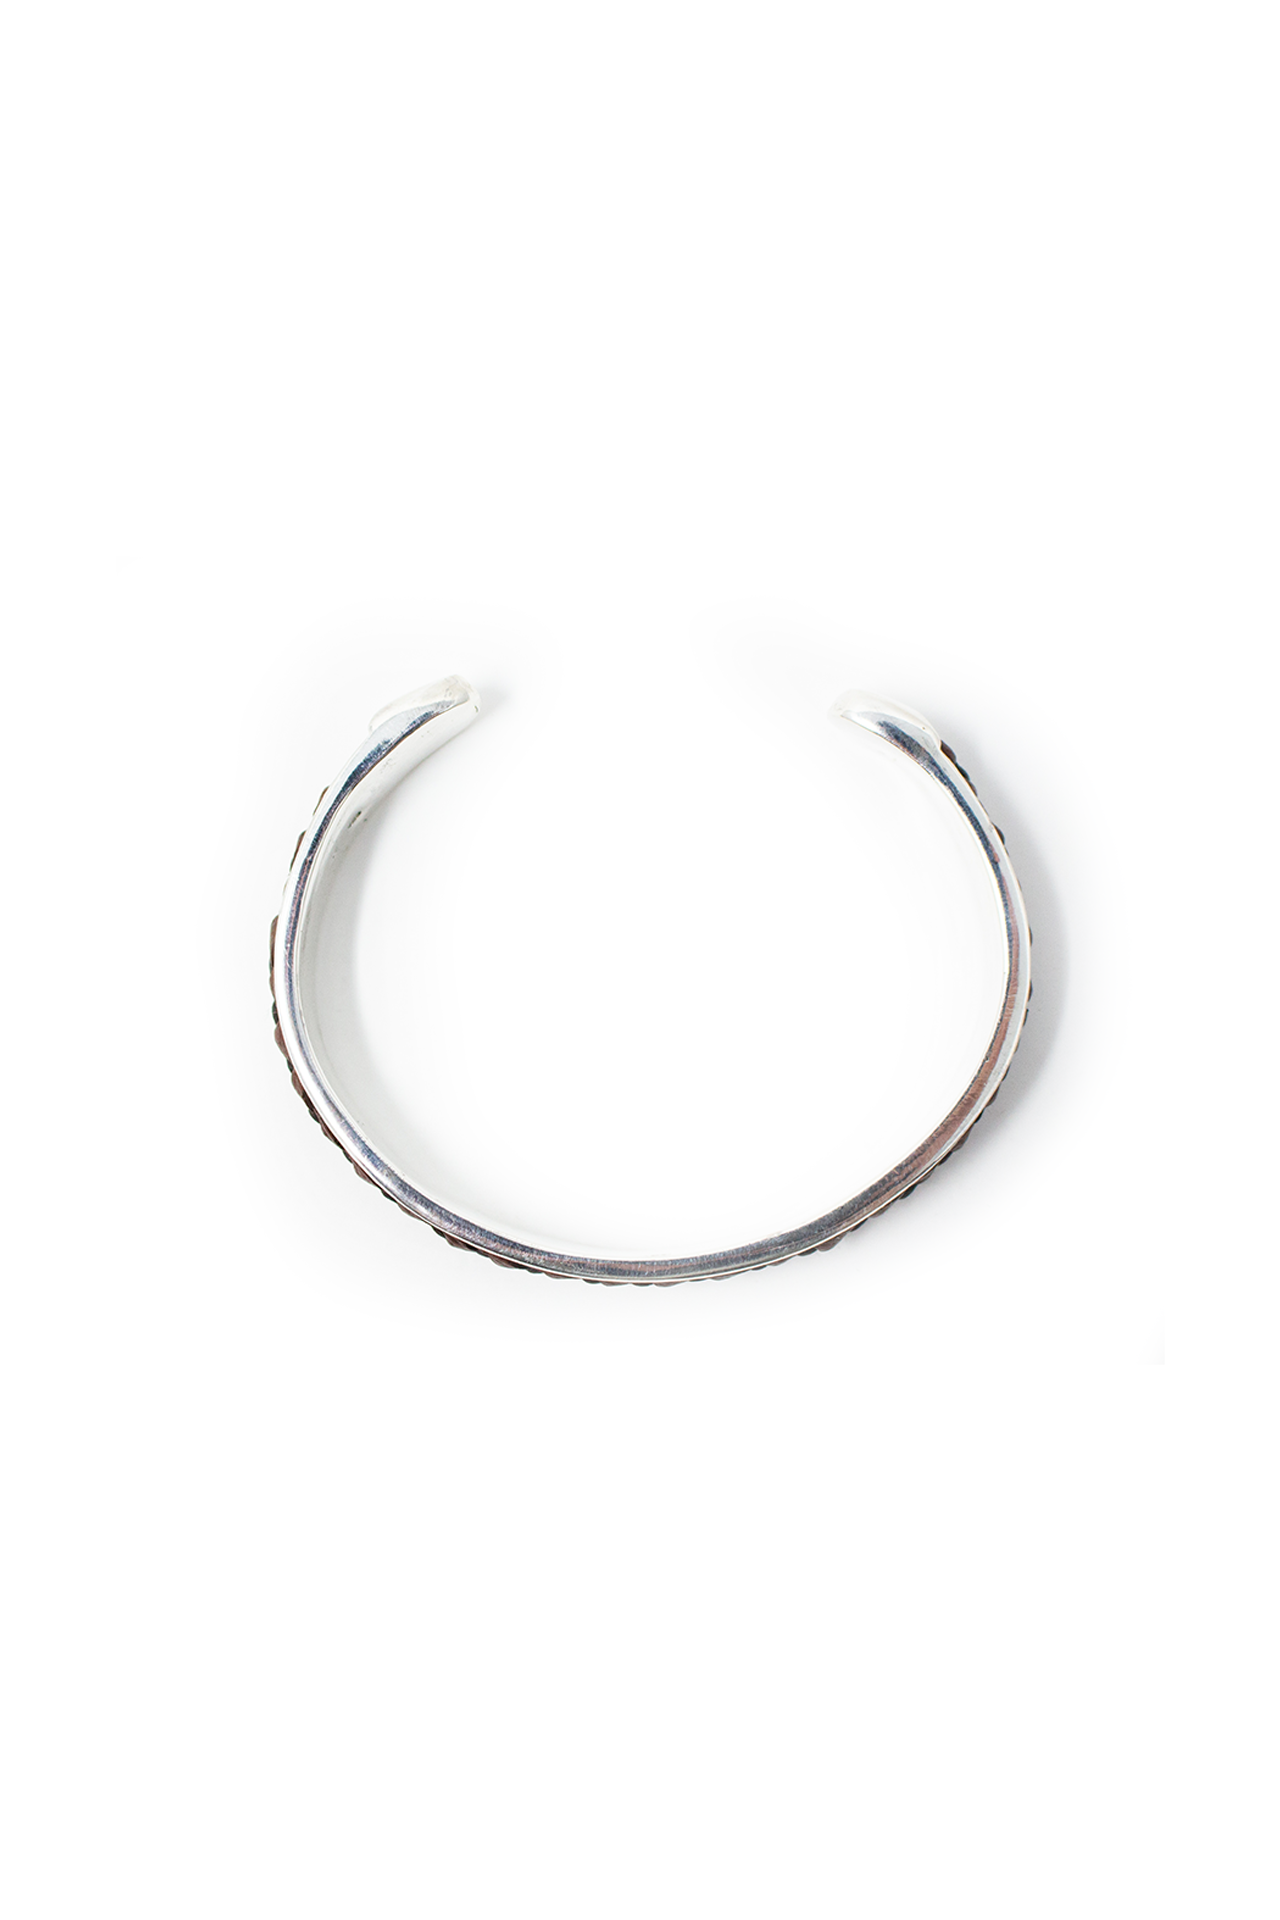 Aerial View Silver Satin Finish Bangle With Dark Brown Leather